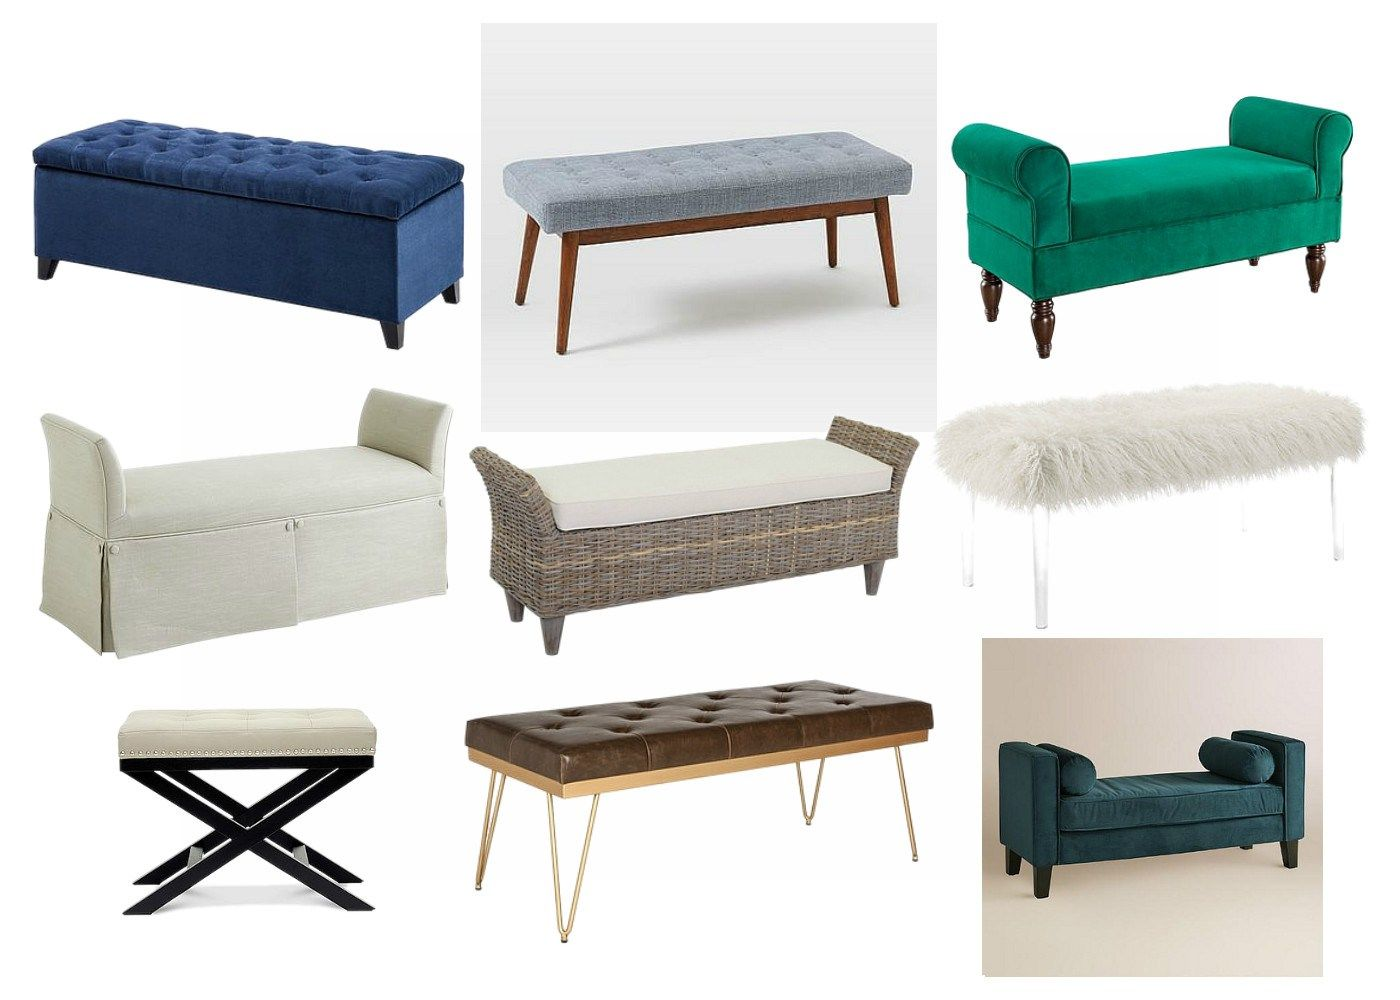 How To Choose The Best Bedroom Bench Simple Stylings Bedroom